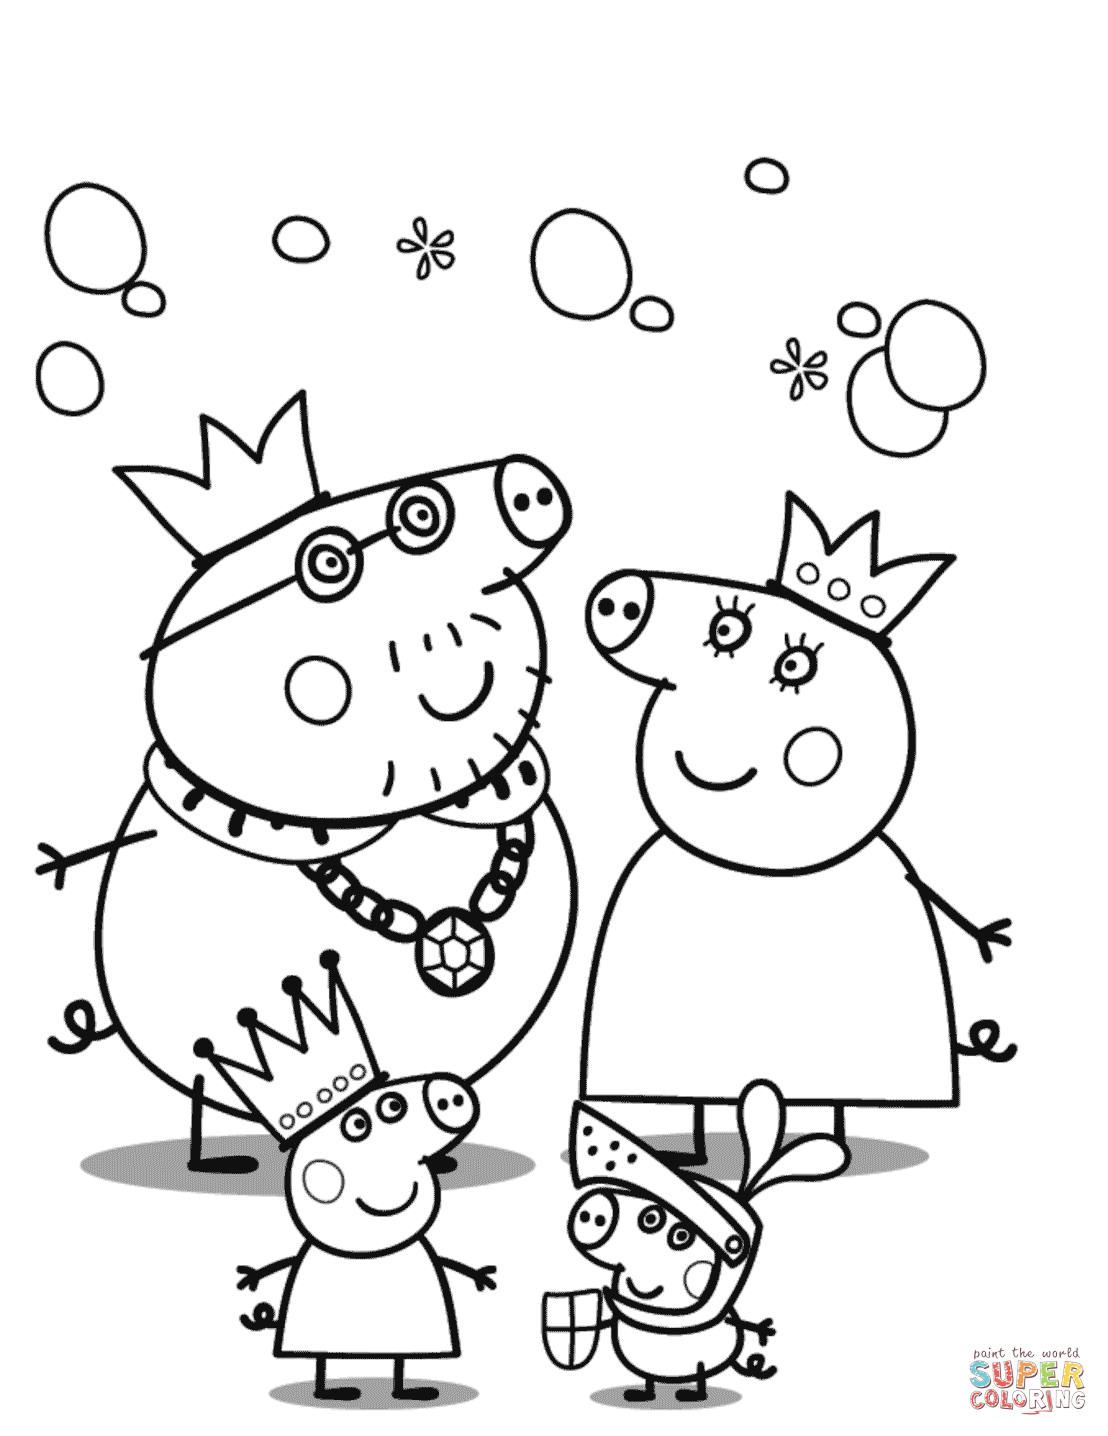 Peppa Pig Coloring Pages   Free Coloring Pages - Pig Coloring Sheets Free Printable